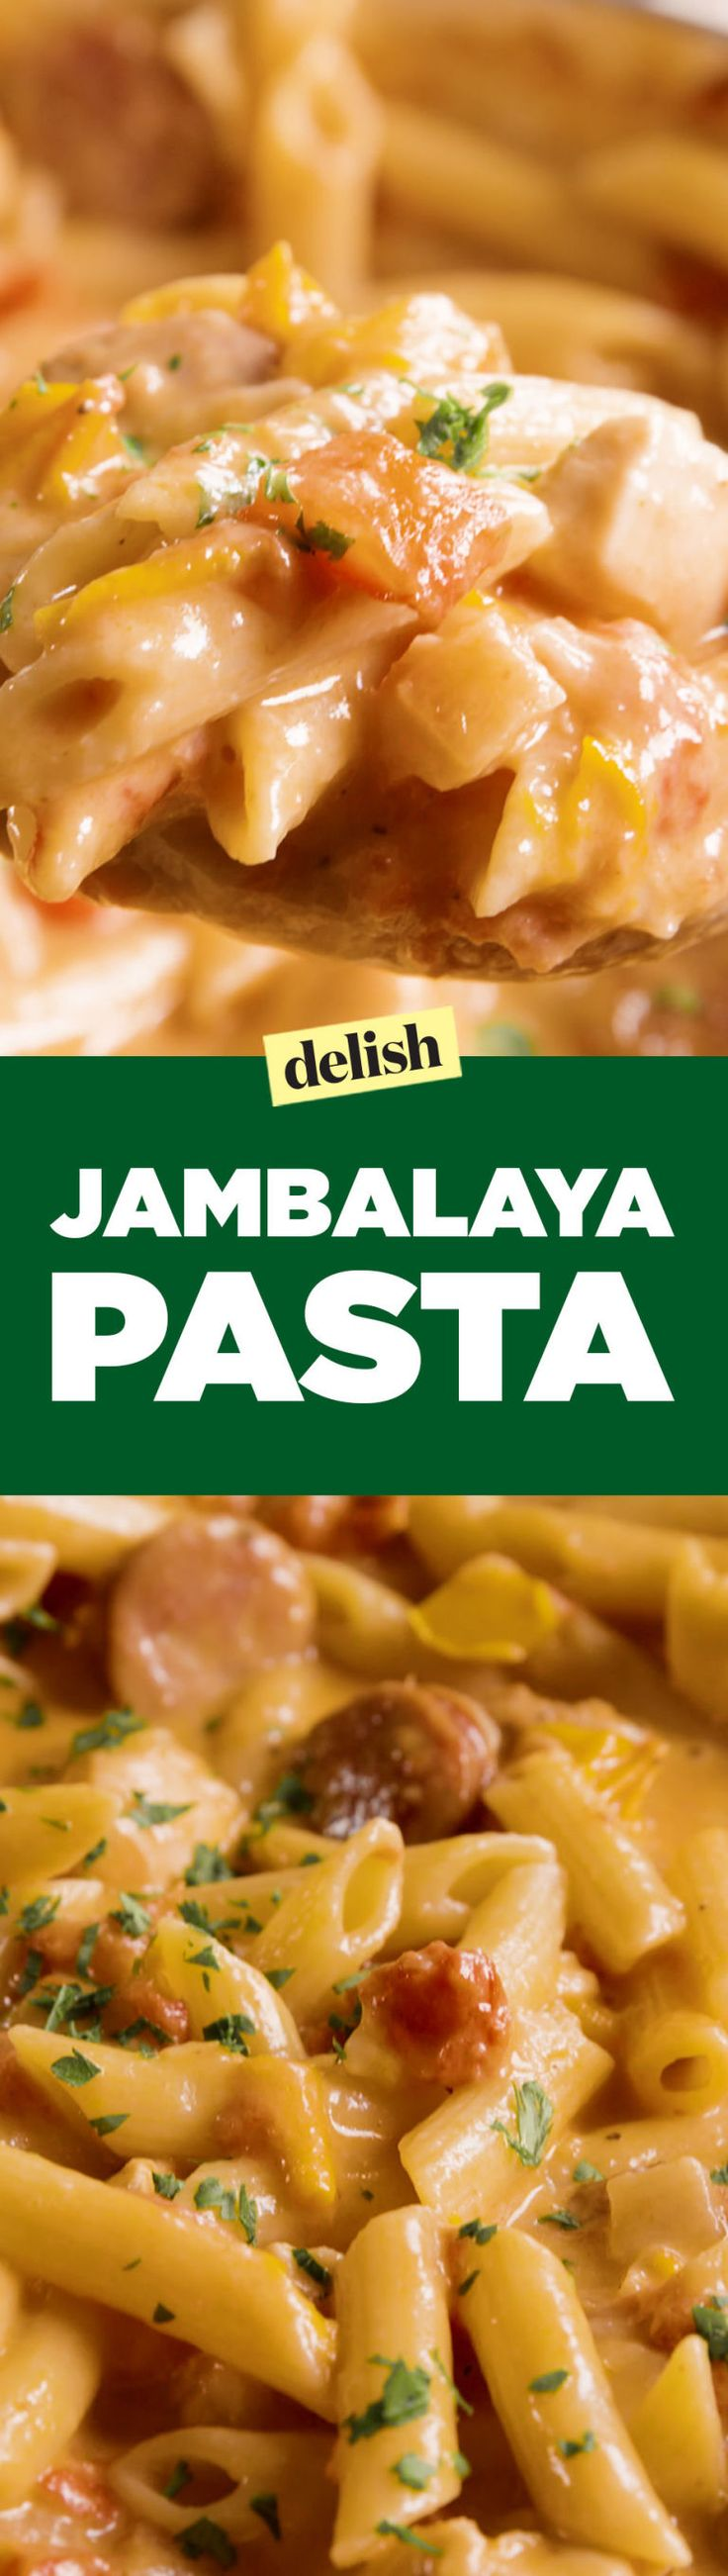 This Jambalaya Pasta Is A Must-Try For Cajun Food Lovers